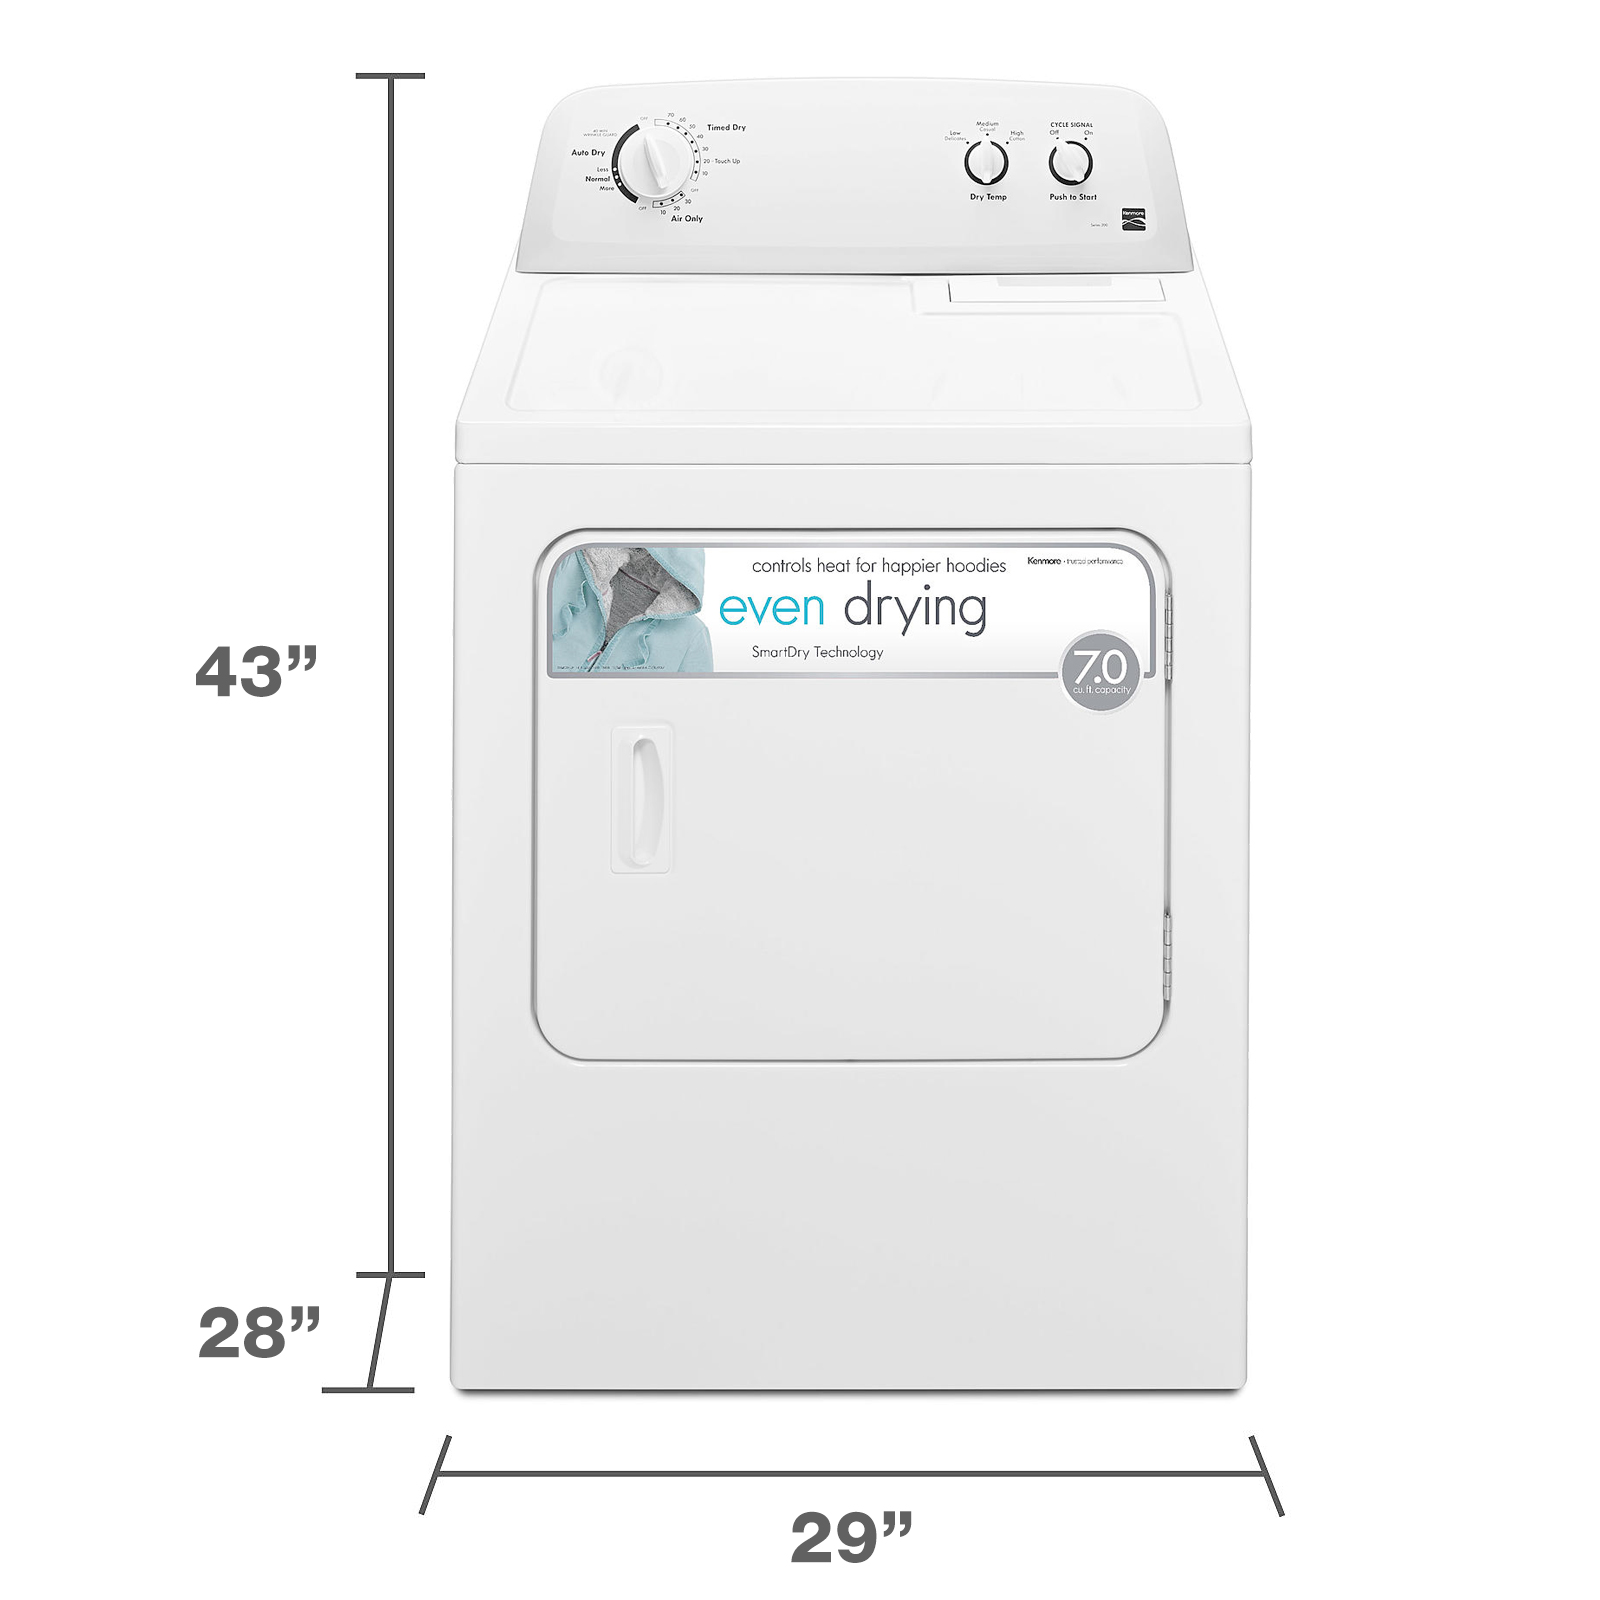 Kenmore 62332 7.0 cu. ft. Electric Dryer - White